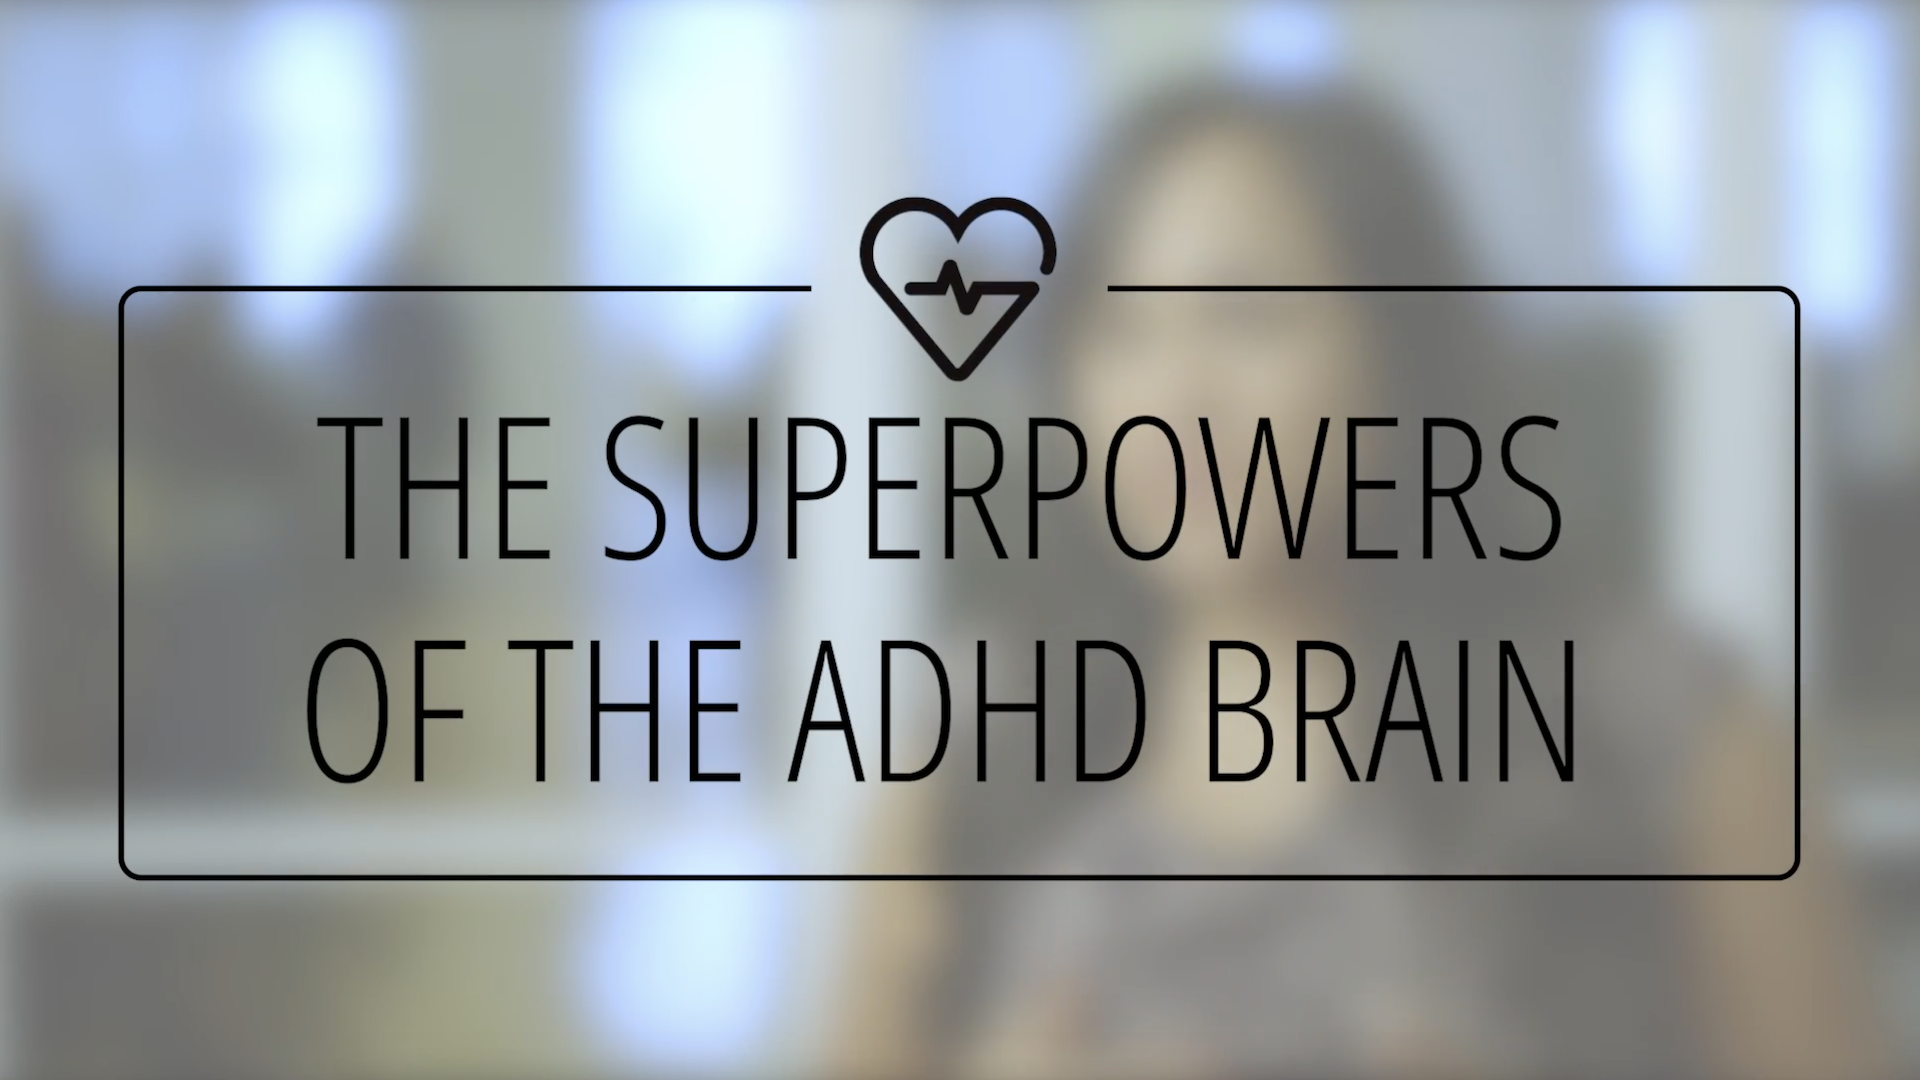 The Superpowers Of Adhd Psychologists >> The Benefits Of The Adhd Brain Per Psychologists Simplemost